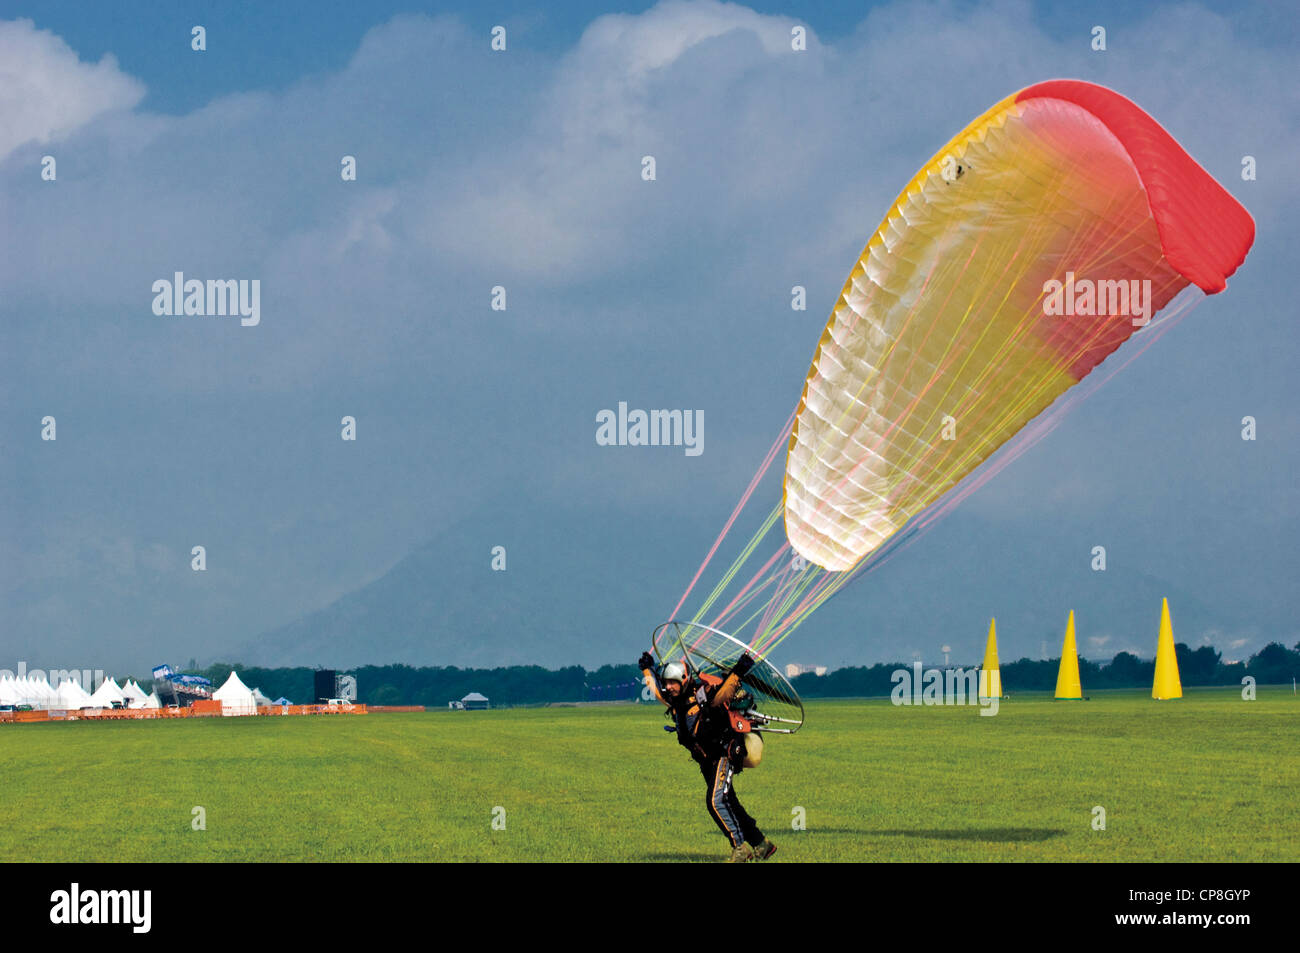 Europe Italy Piedmont Turin airport of Collegno  Word Air Games 2009 motorized paraglider - Stock Image